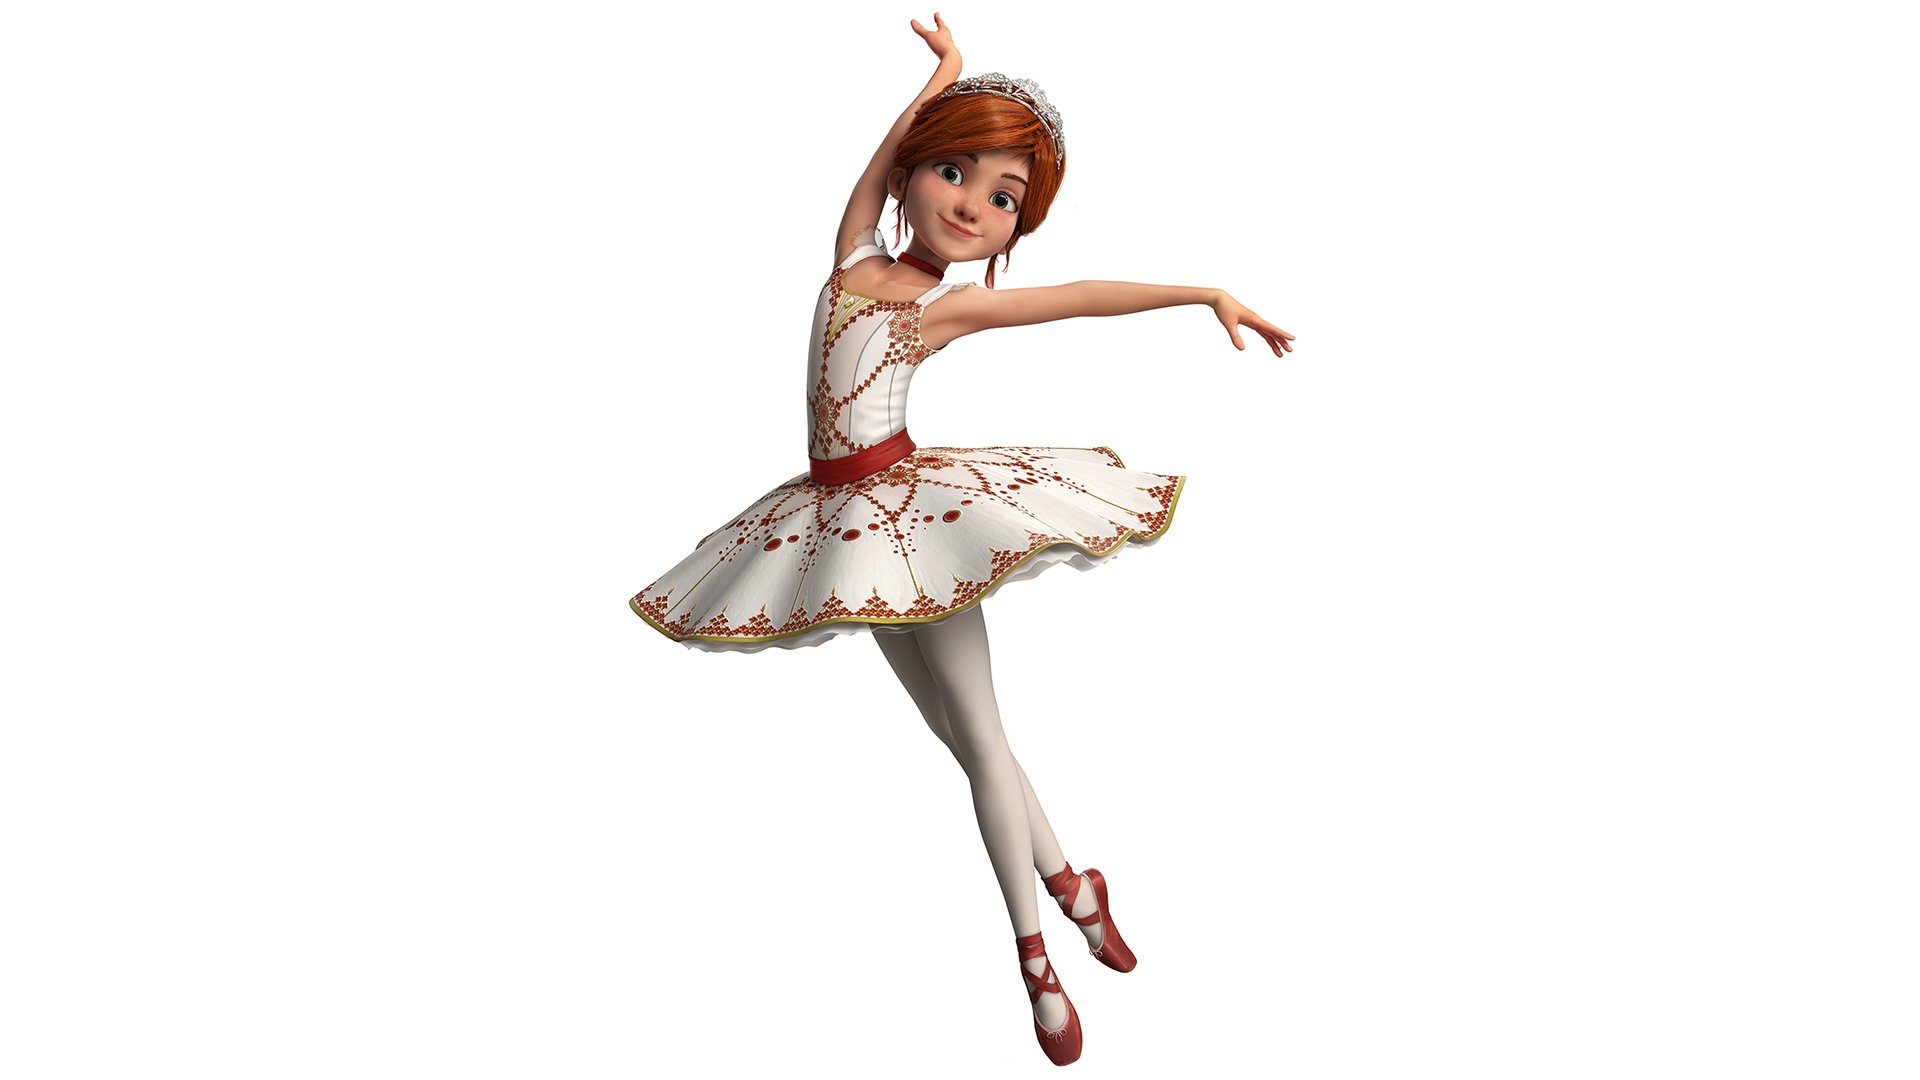 6 ballerina hd wallpapers background images wallpaper abyss hd wallpaper background image id798157 voltagebd